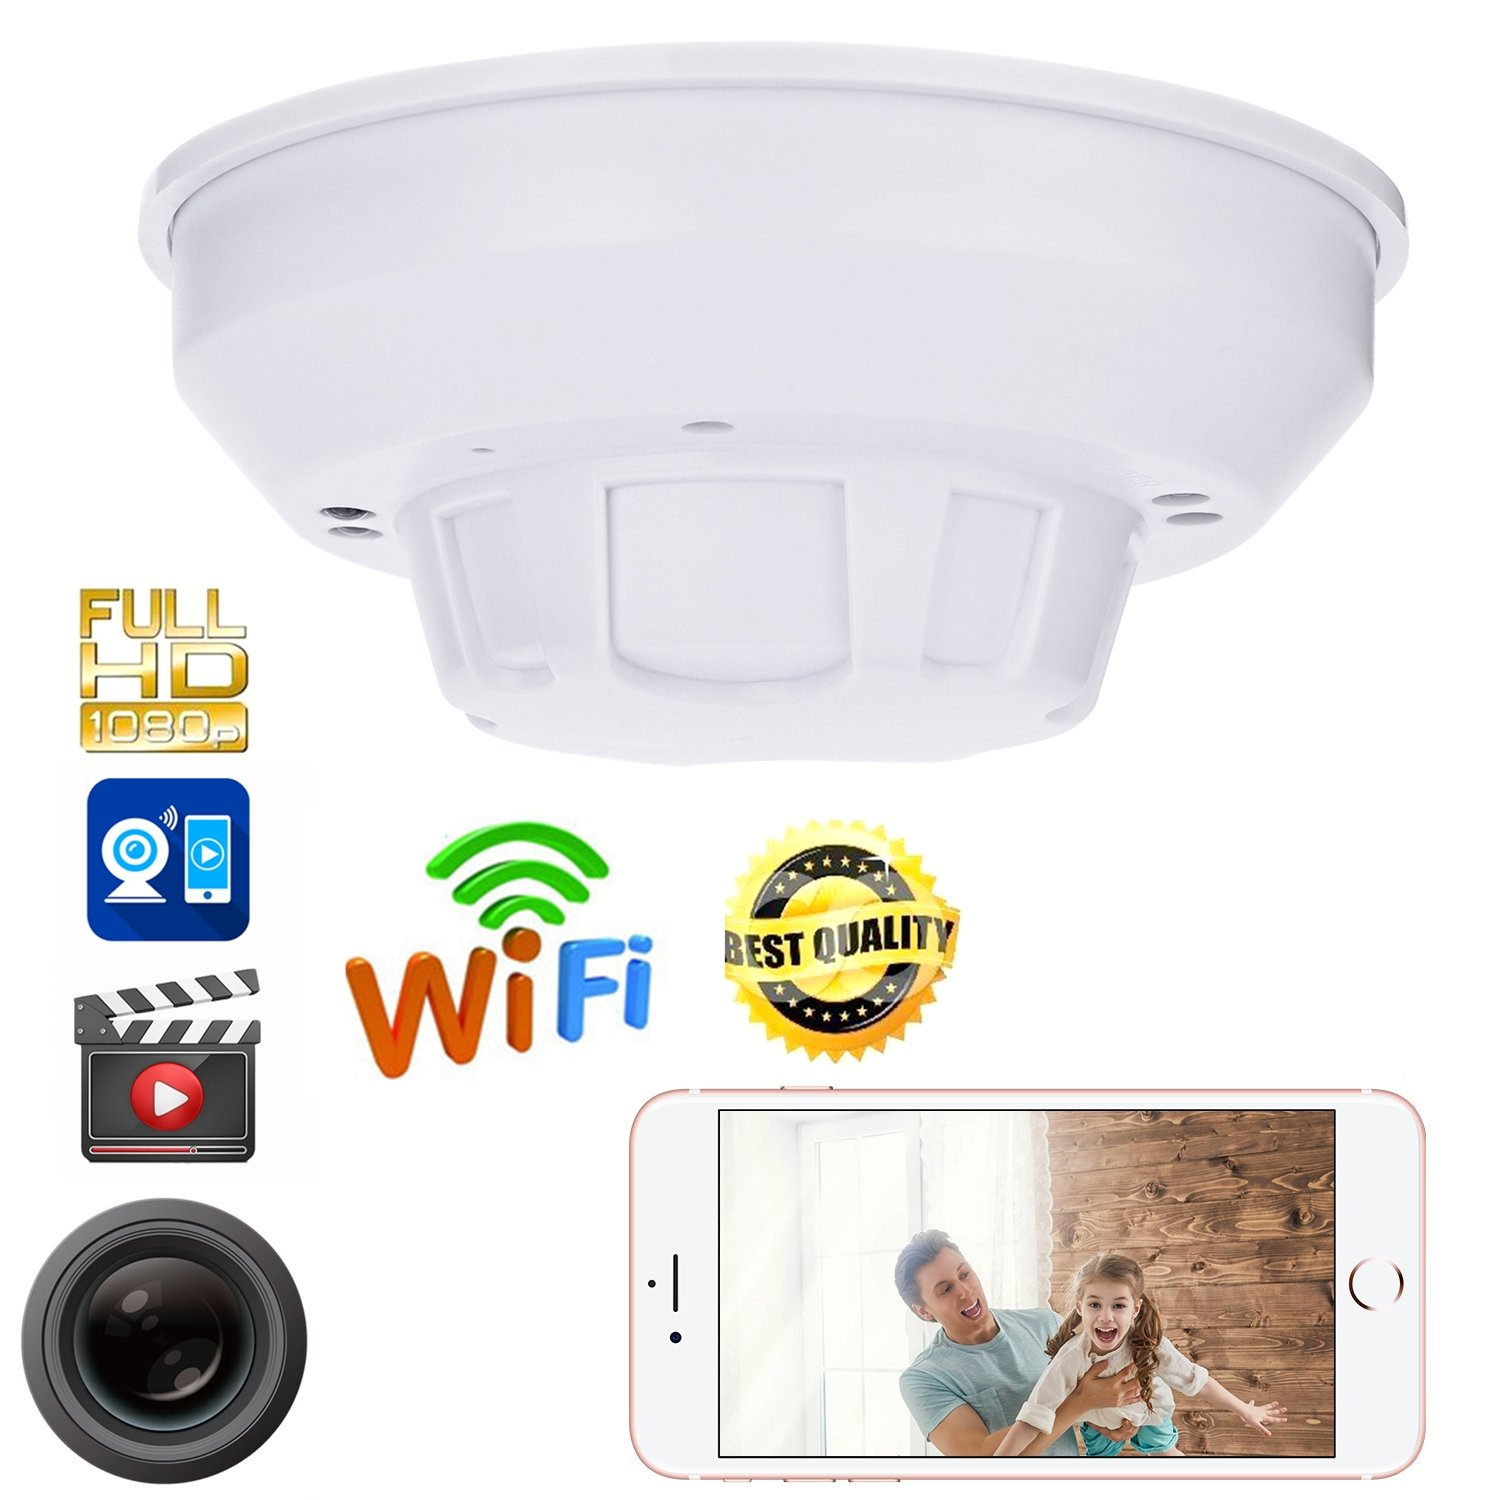 AGPtek-Mini-SPY-DVR-Hidden-IP-Camera-Smoke-Detector-Motion-Detection-Nanny-Cam-1080P-HD_(4).jpg